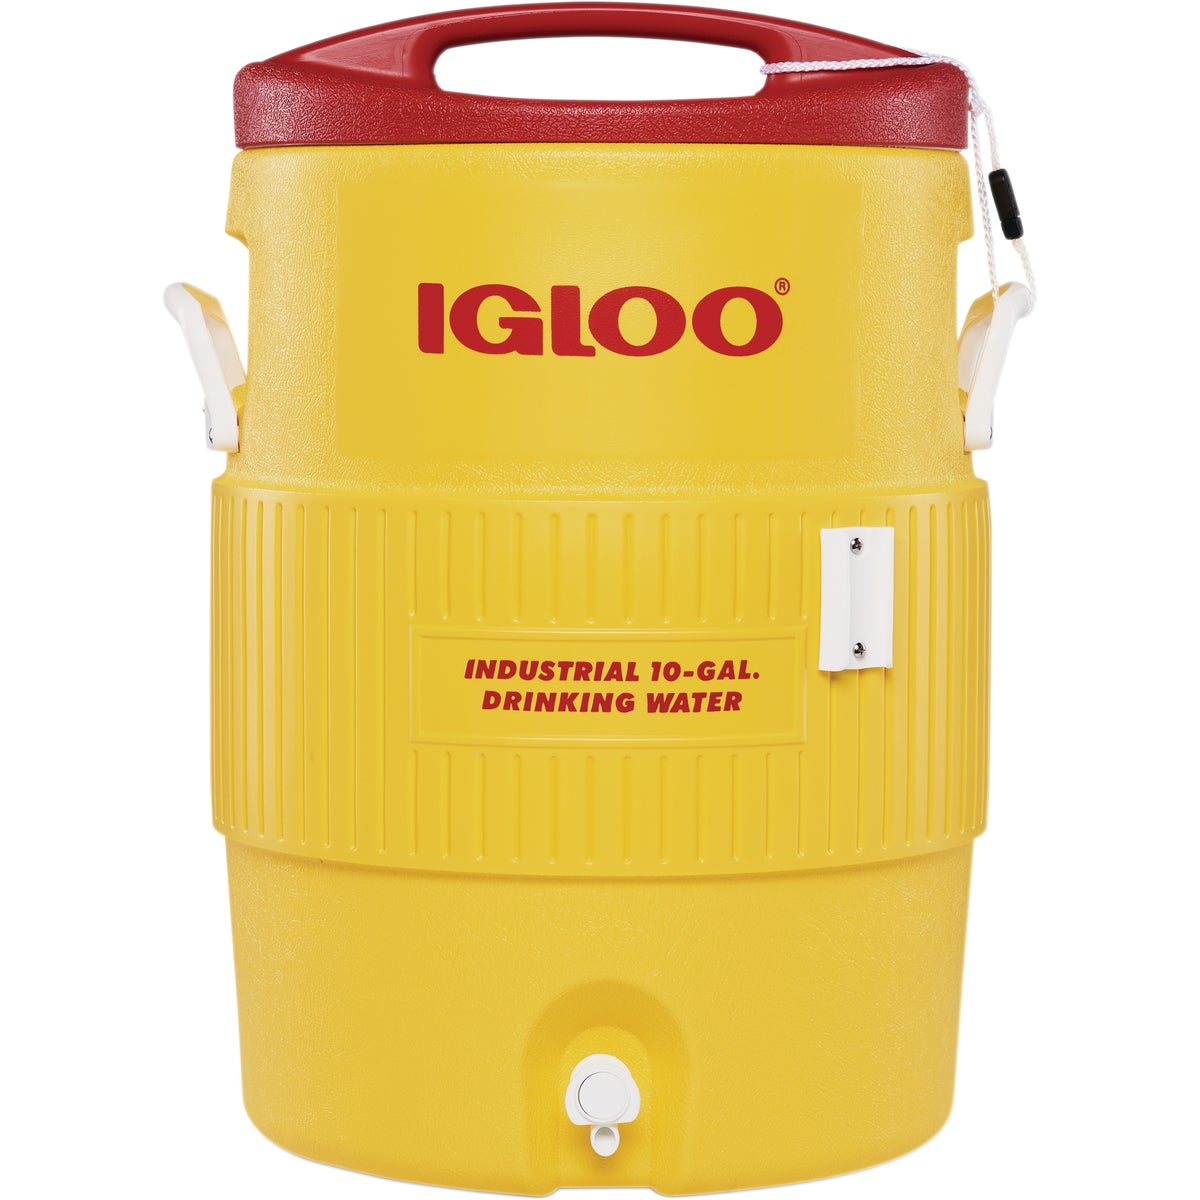 10GAL BEVERAGE COOLER - 4101 by Igloo Corp